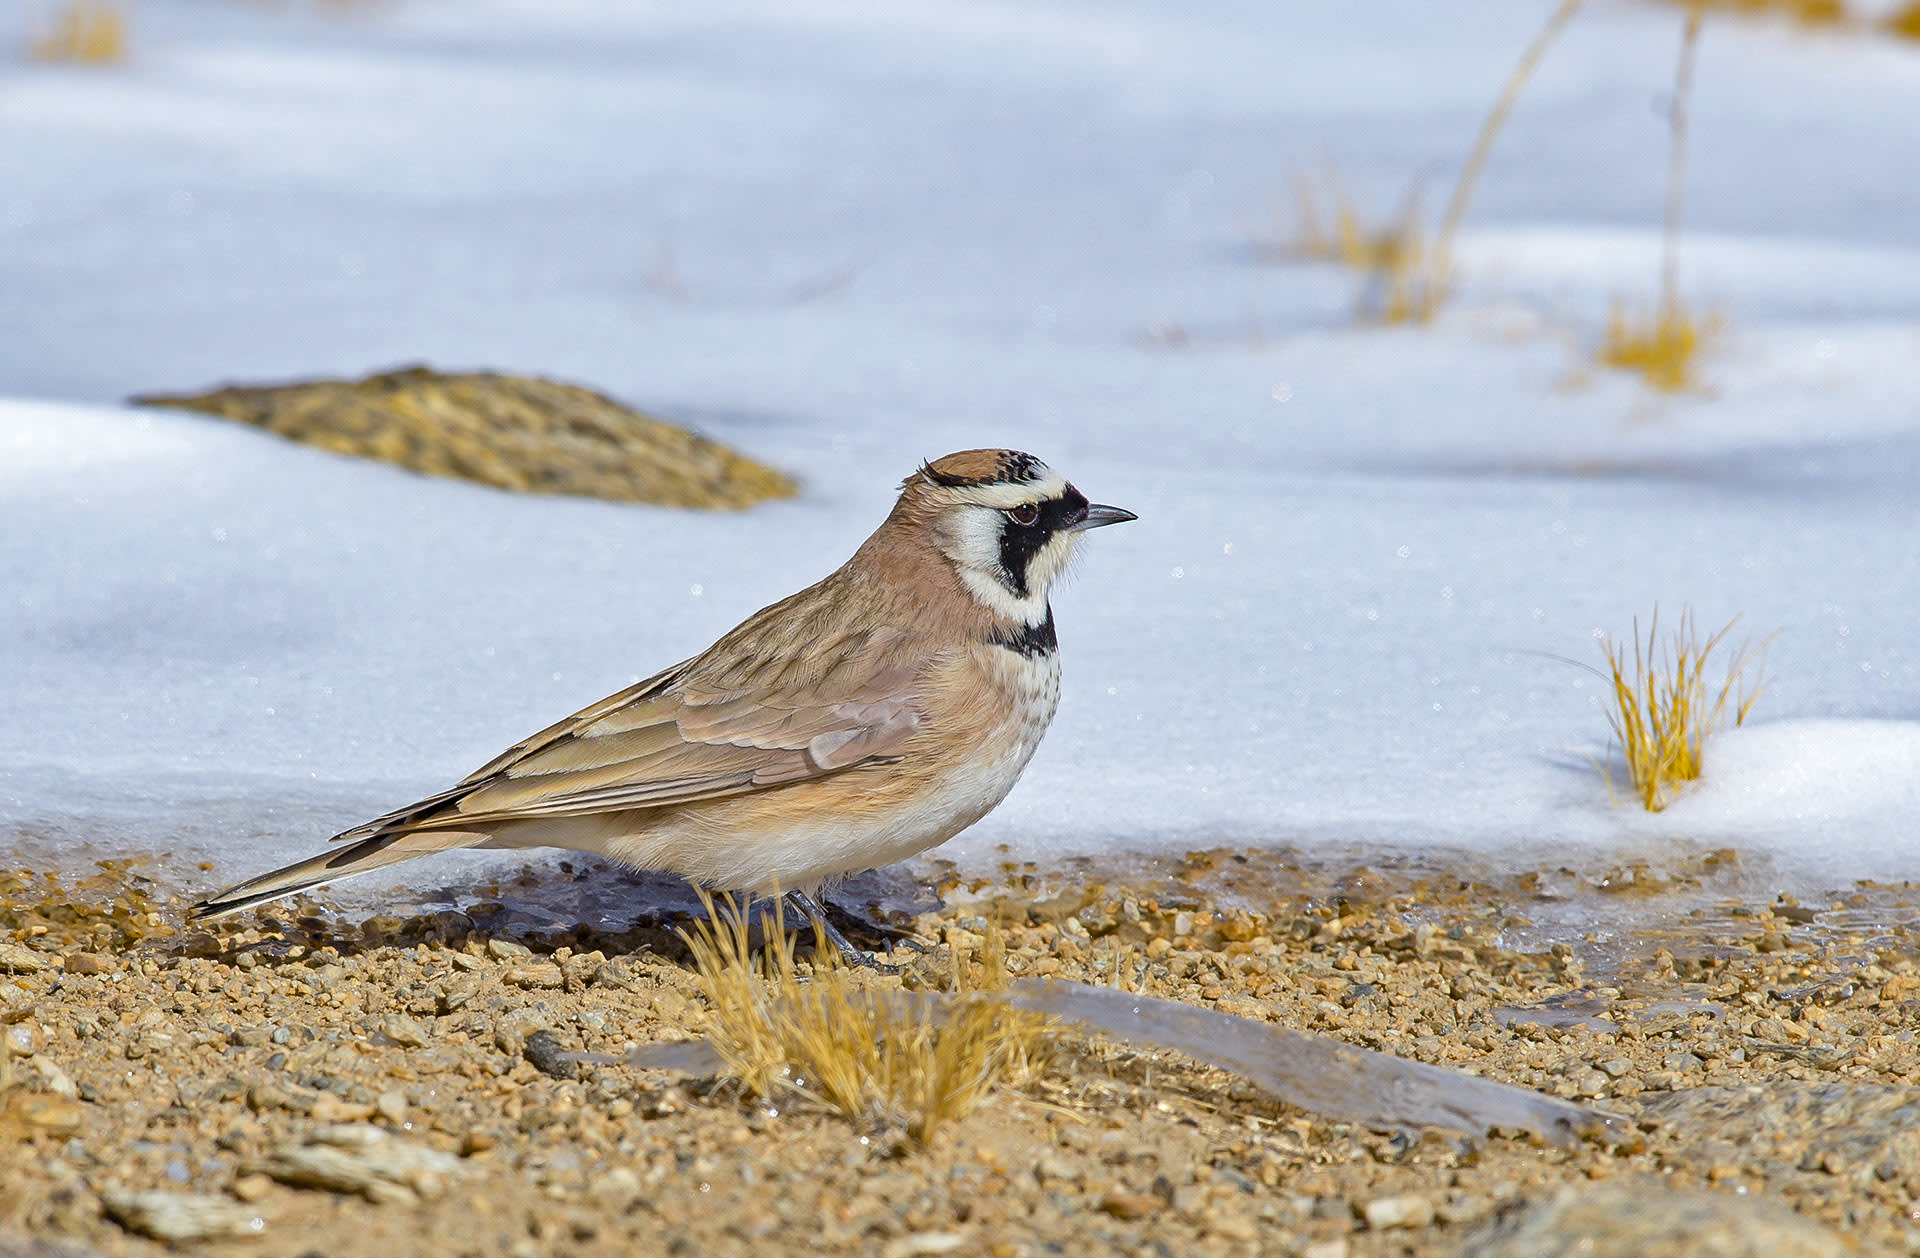 When the horned lark forages for food, it doesn't fly. Instead, it walks or runs on the ground looking for insects, seeds, berries and fruits. Photo: Dhritiman Mukherjee  Cover: A black mask and tiny hornlike feathers on its head give the horned lark a perpetually angry look. The female does not have the 'horns' and is of a duller colour.    Cover photo: Dhritiman Mukherjee